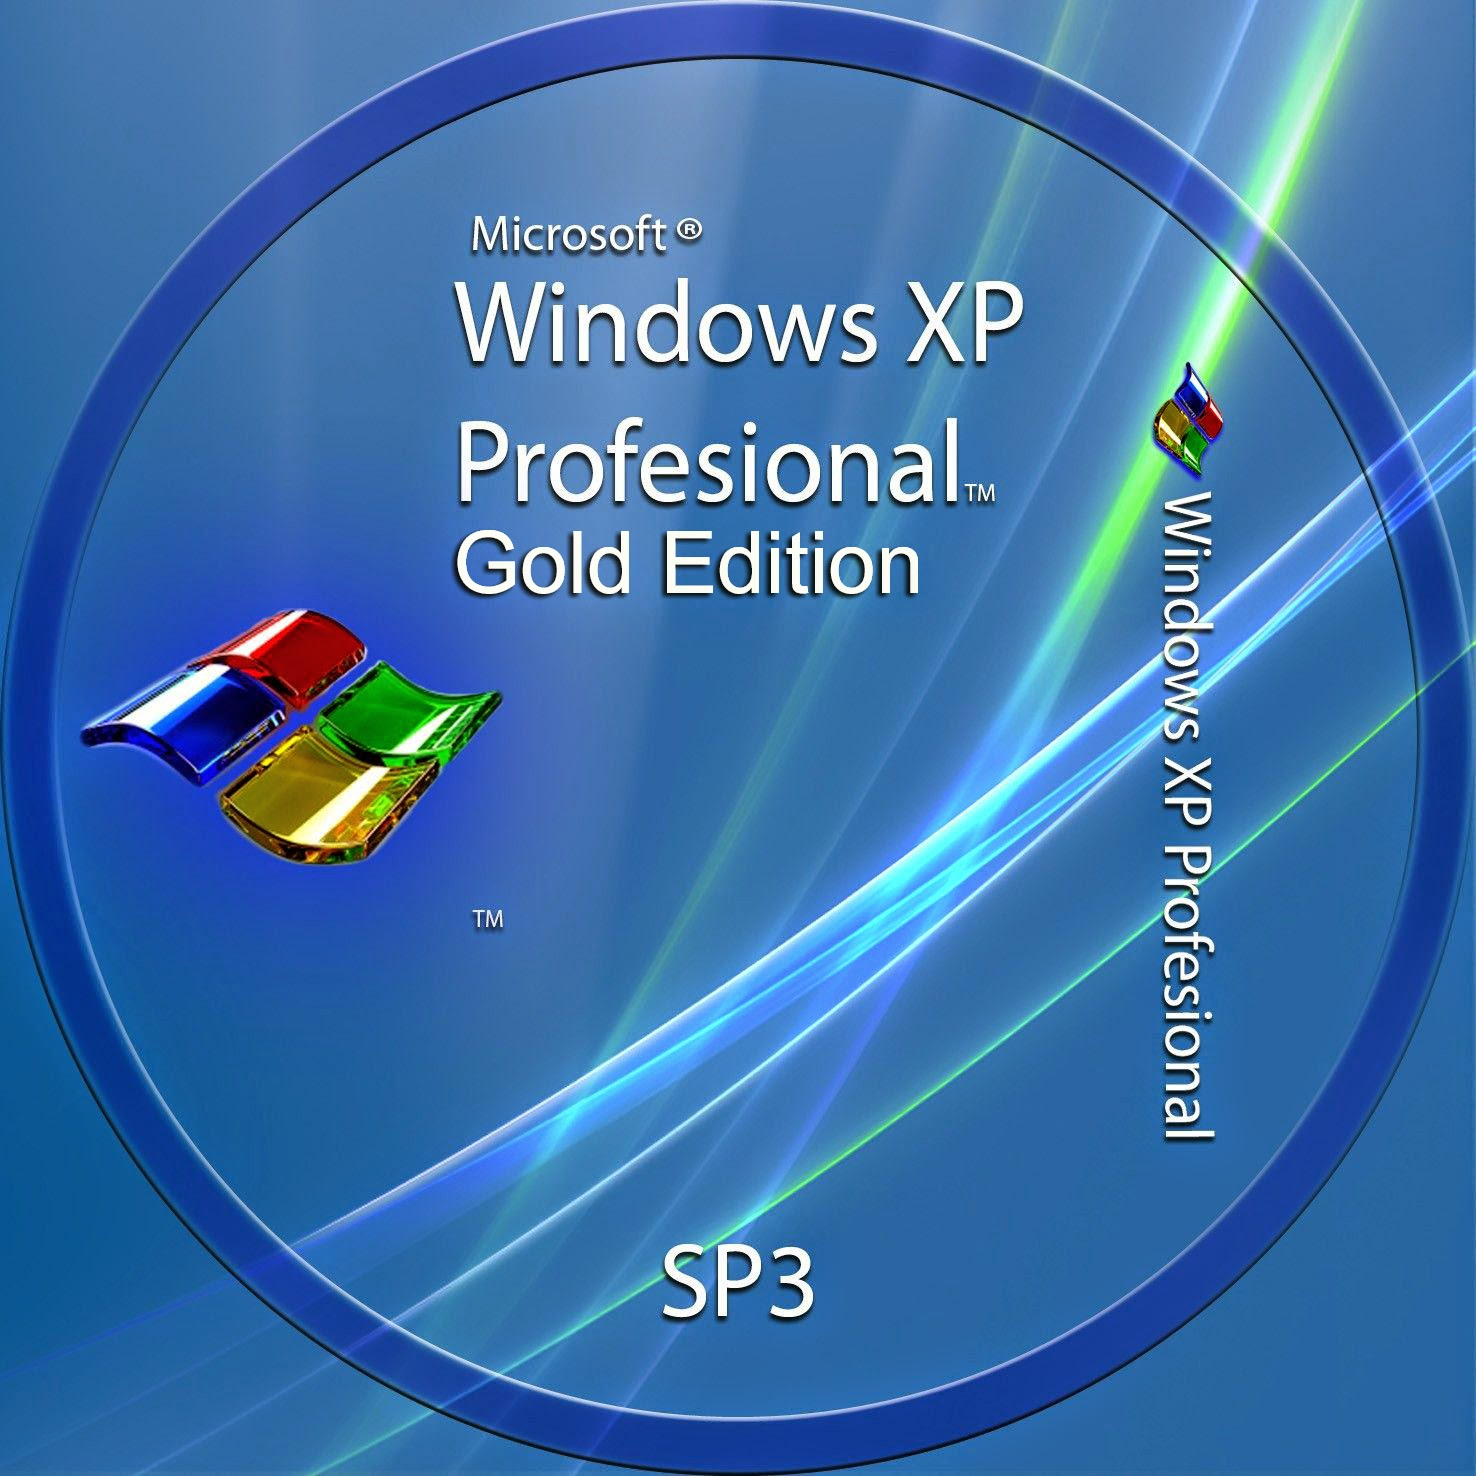 Key features of Windows XP Professional